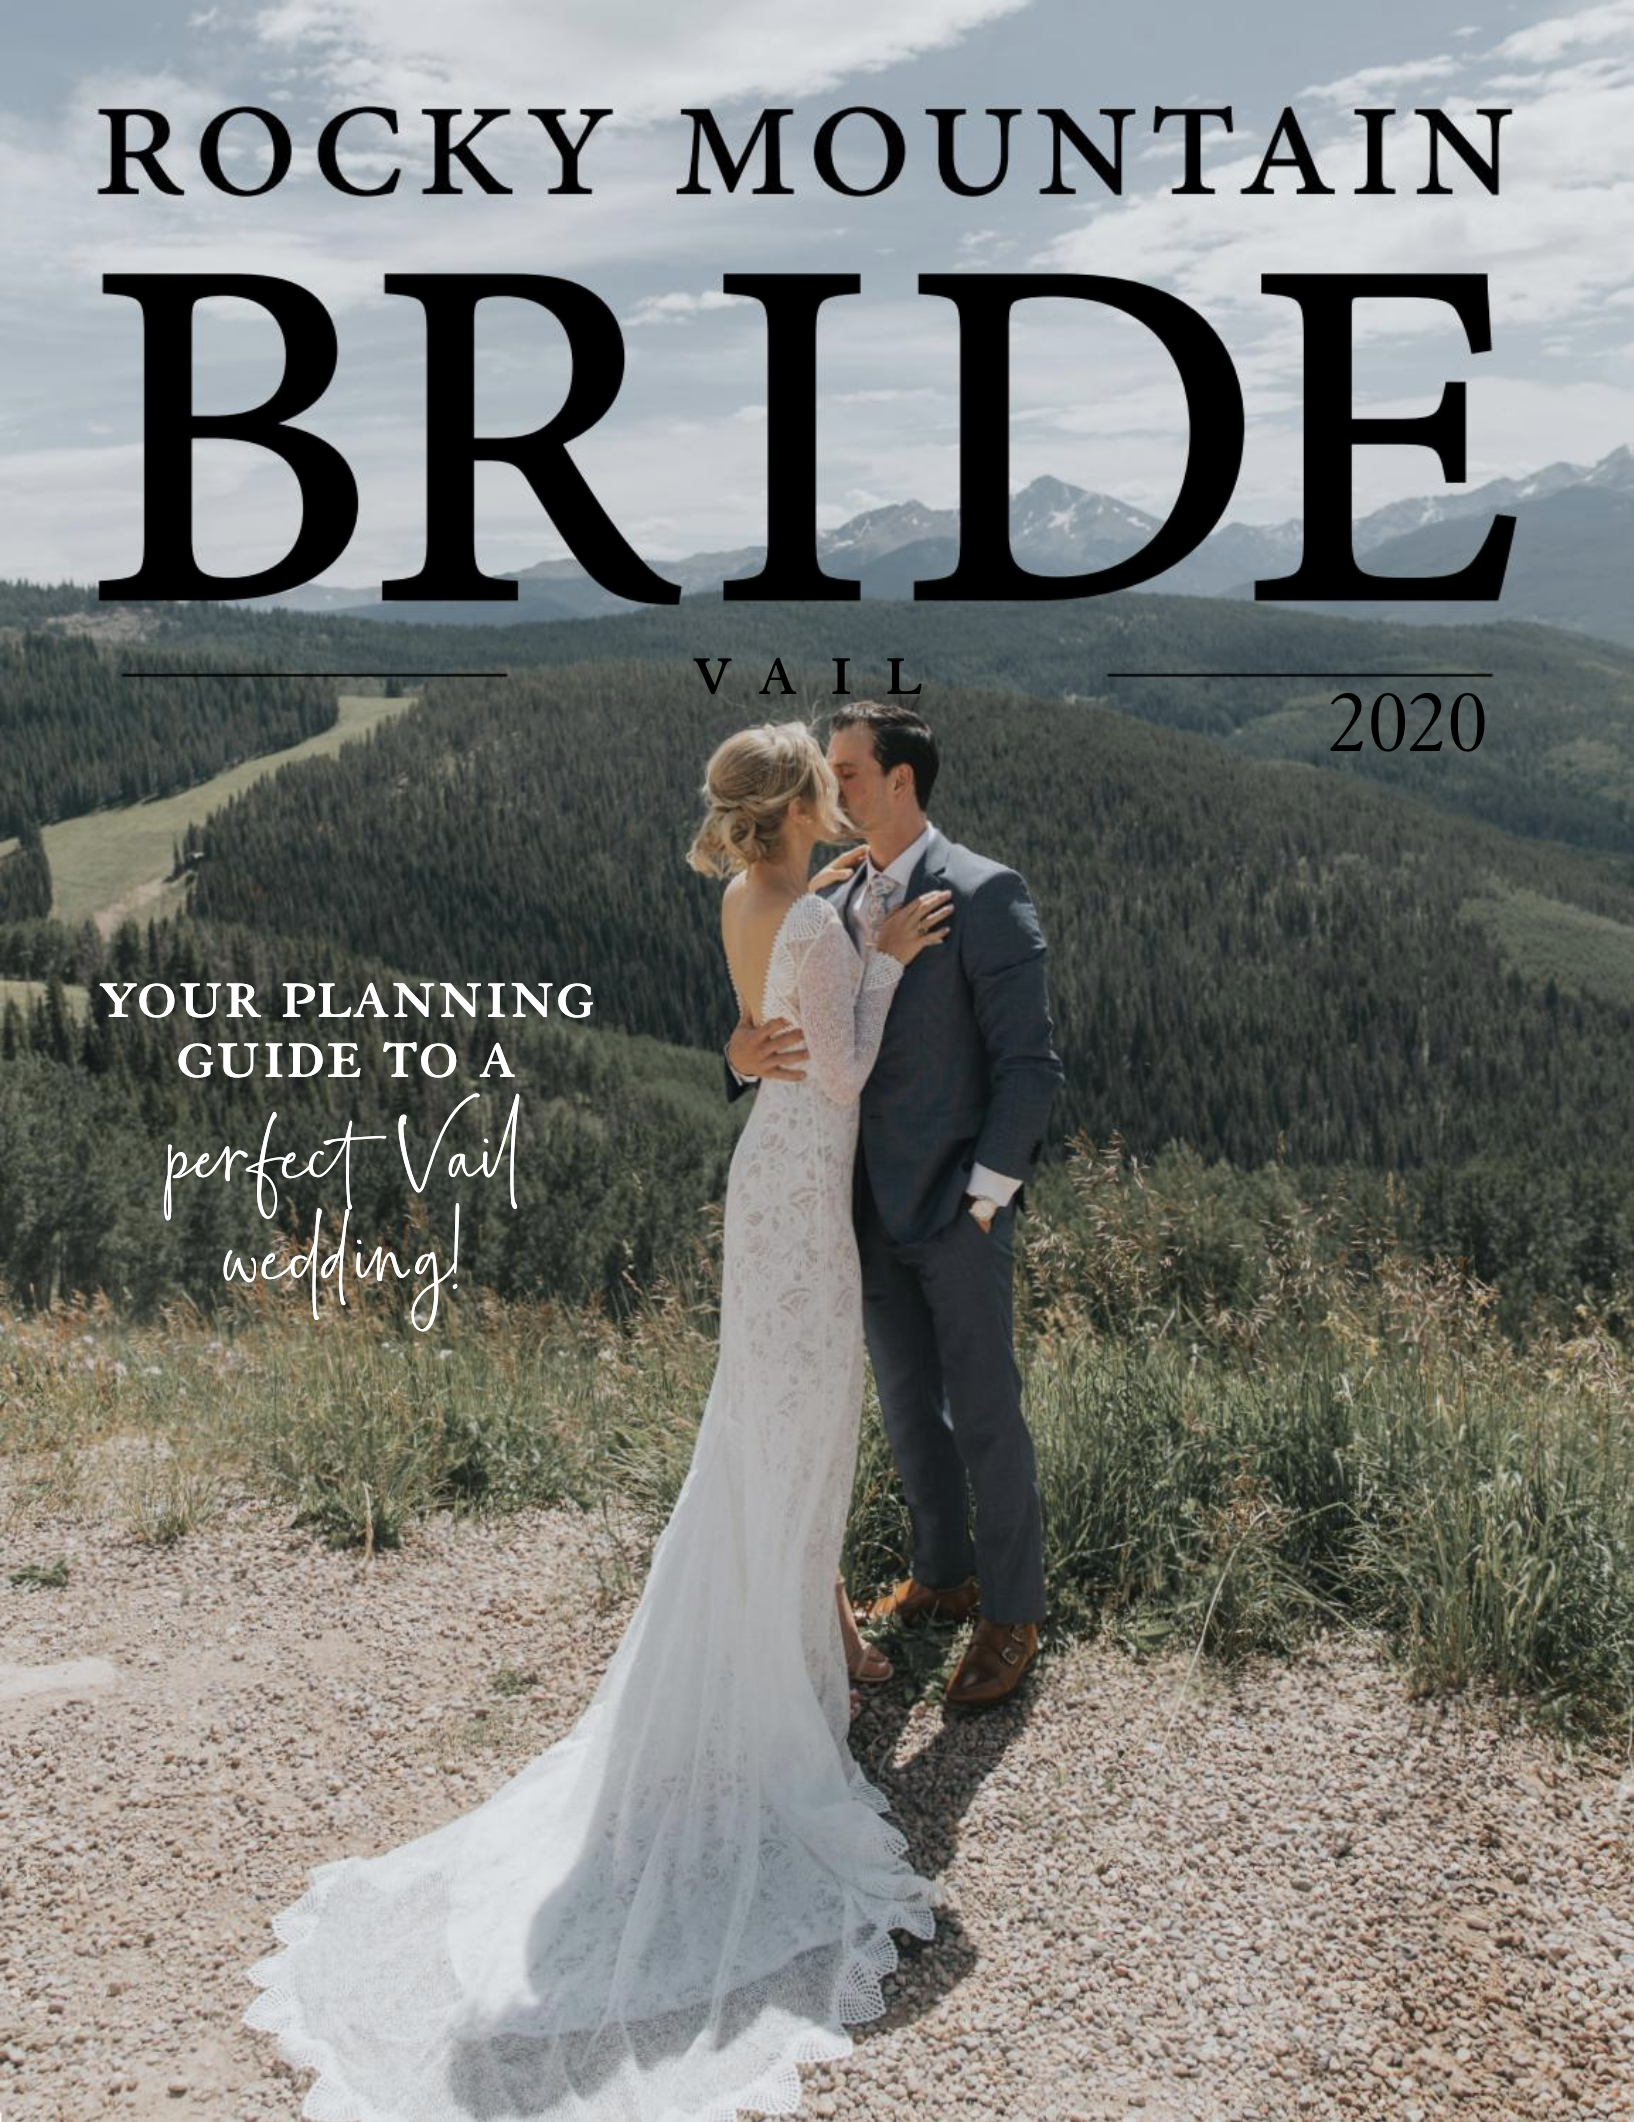 Vail Colorado Wedding Guide Best Wedding Venues And Vendors In 2020 Colorado Wedding Colorado Destination Wedding Best Wedding Venues